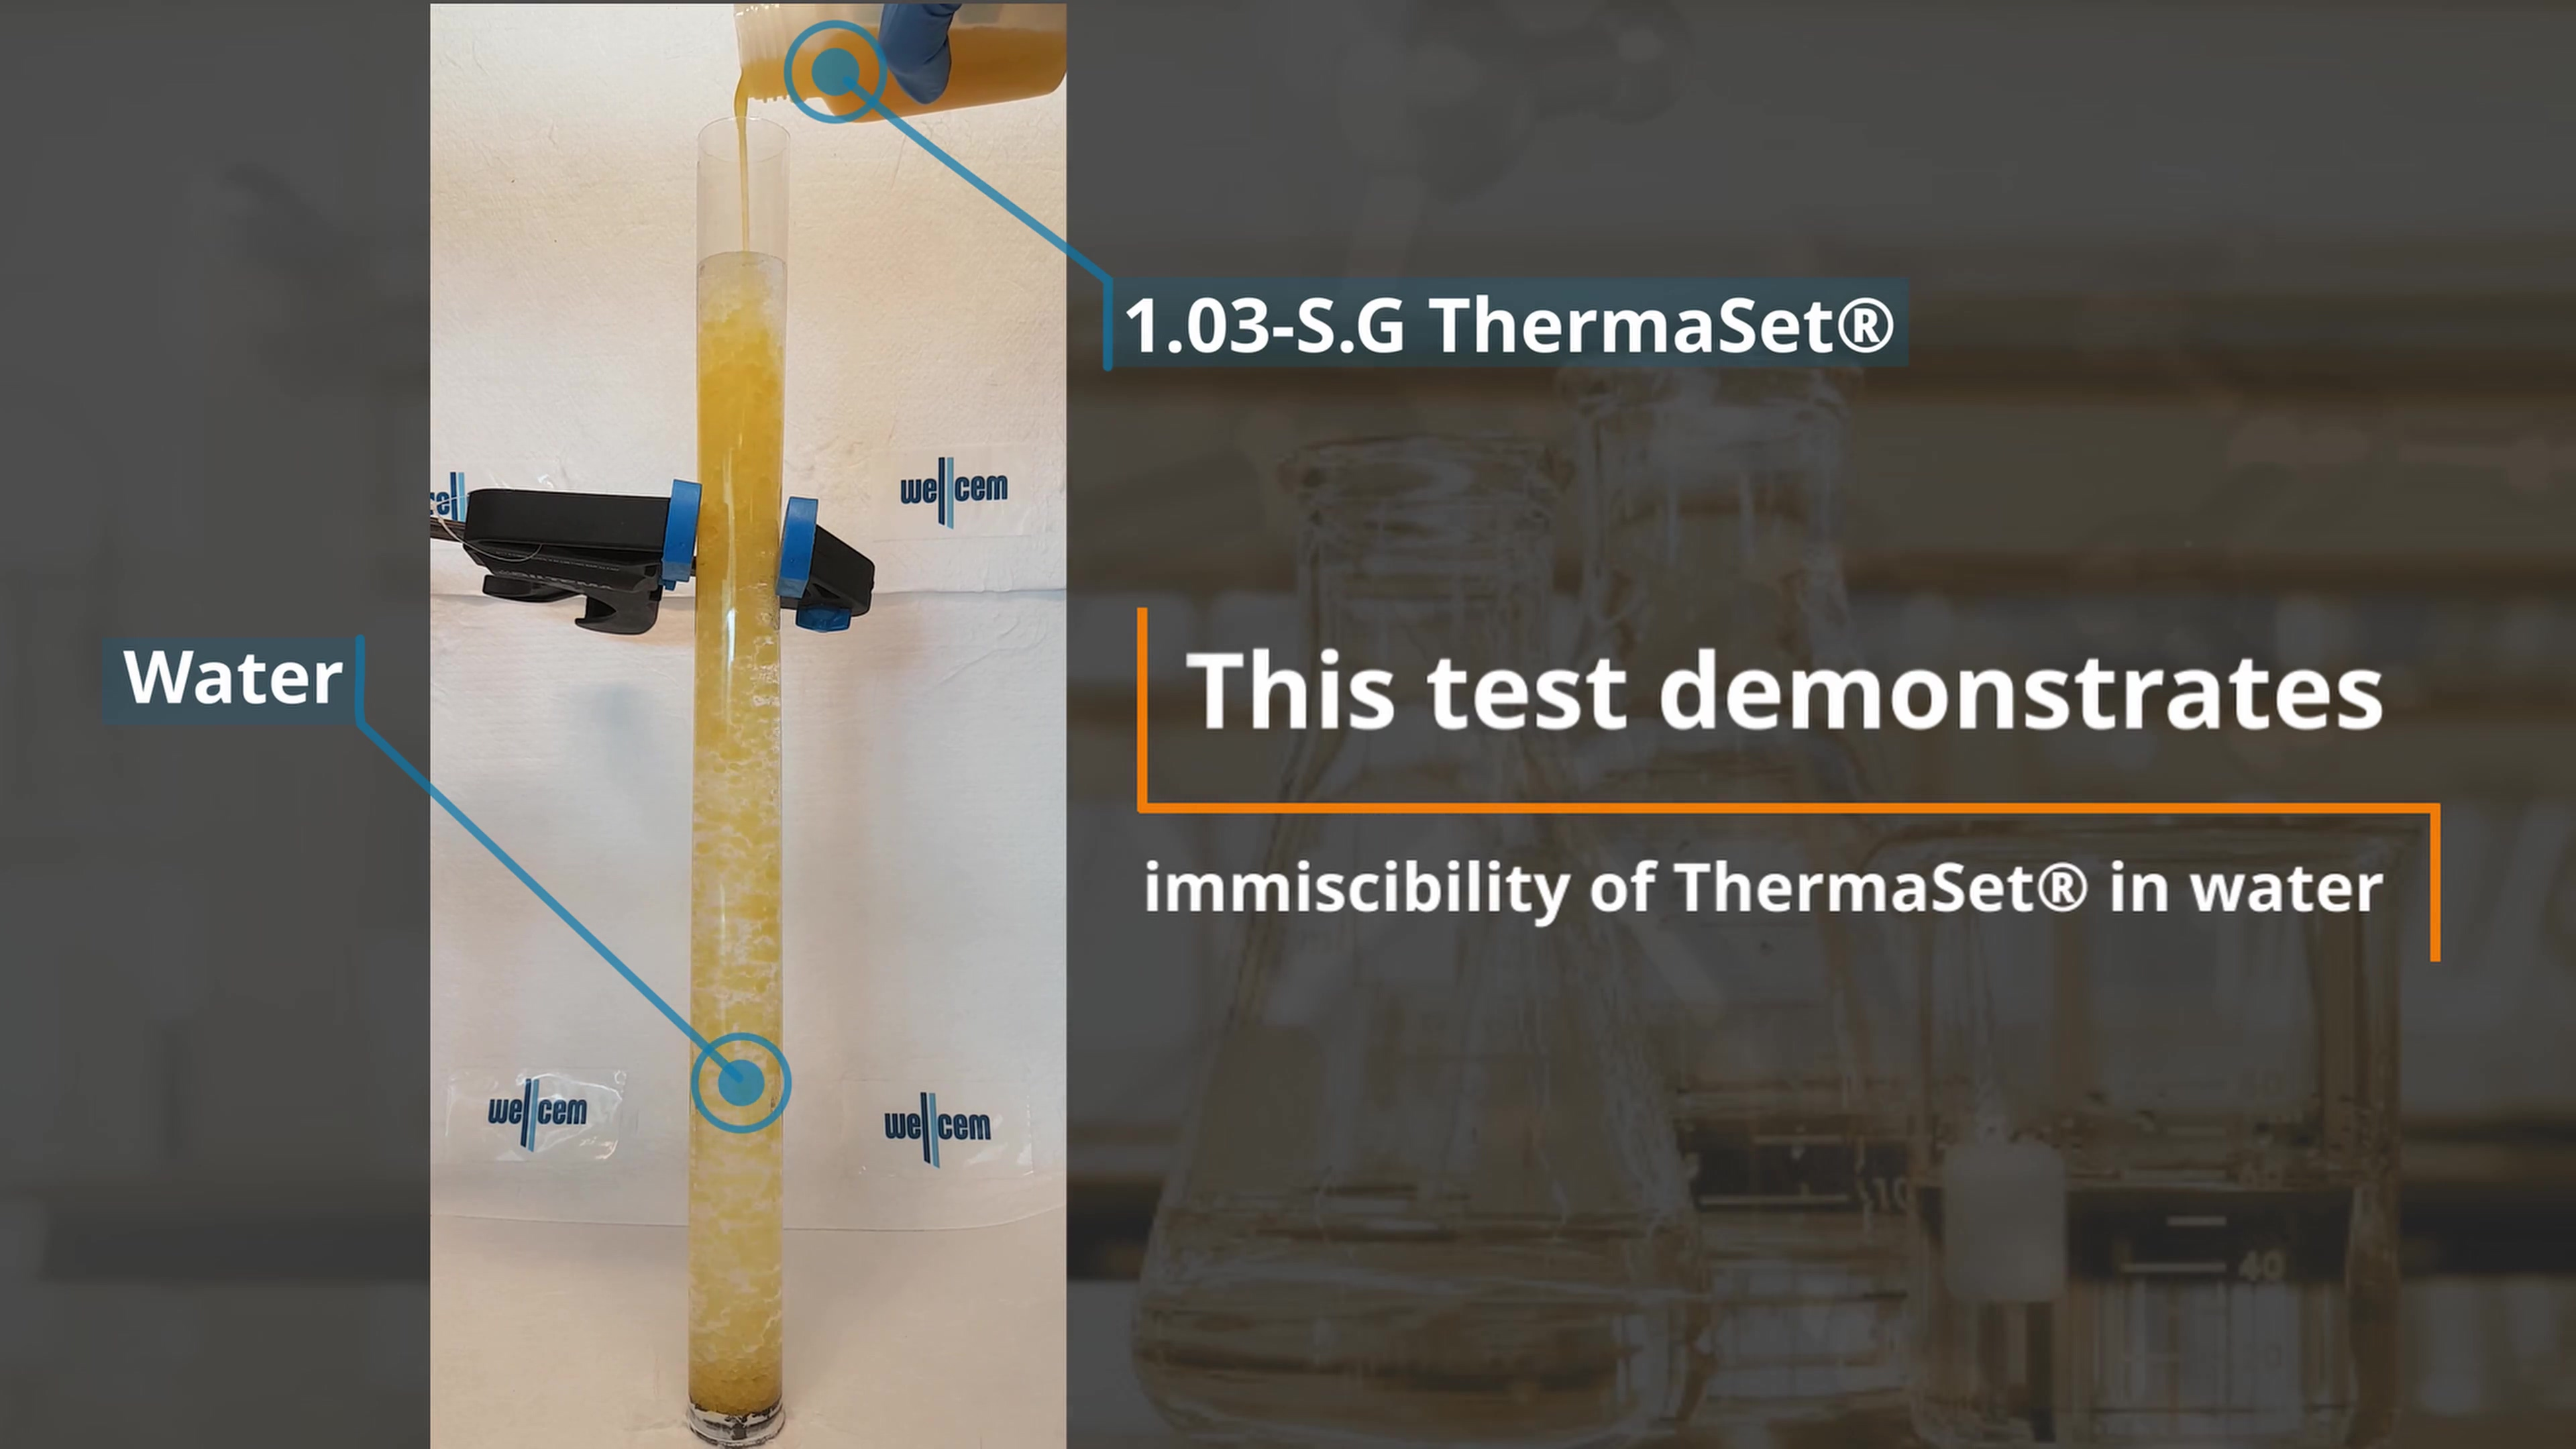 Immiscibility_of_ThermaSet_in_water